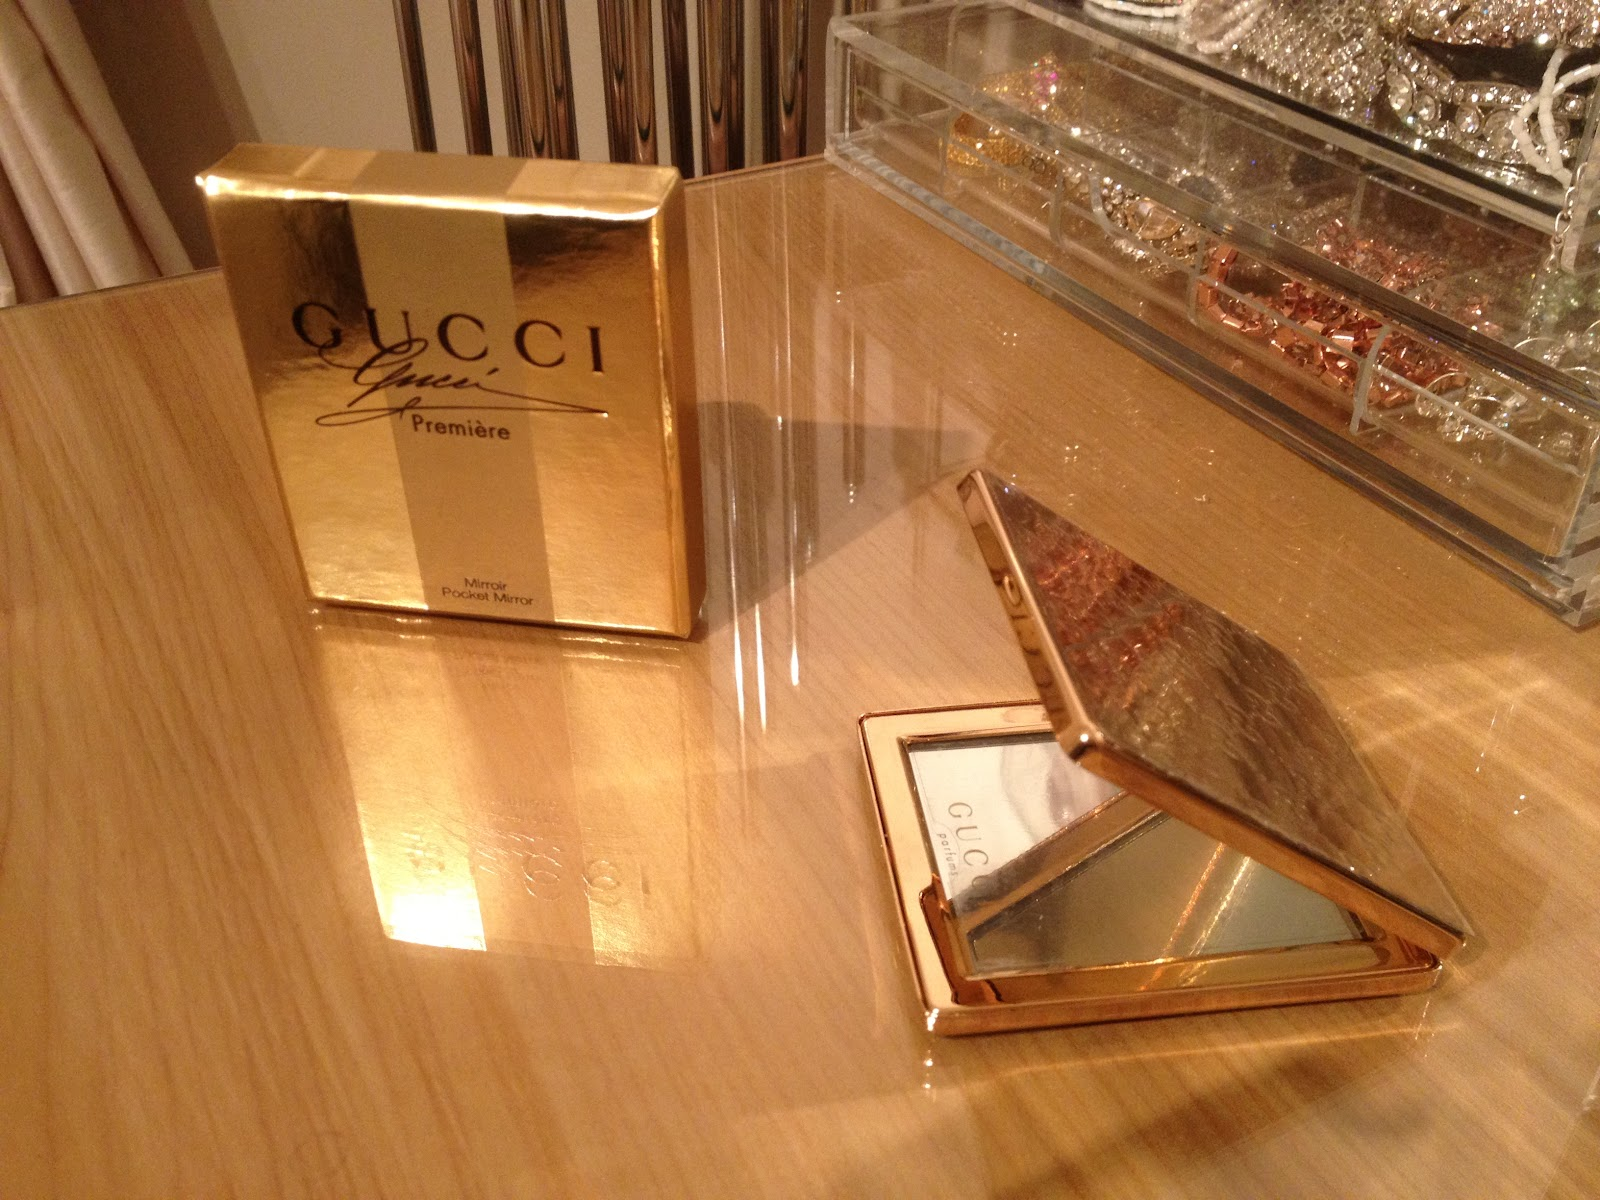 Gucci Gold Perfume New Perfume From Gucci